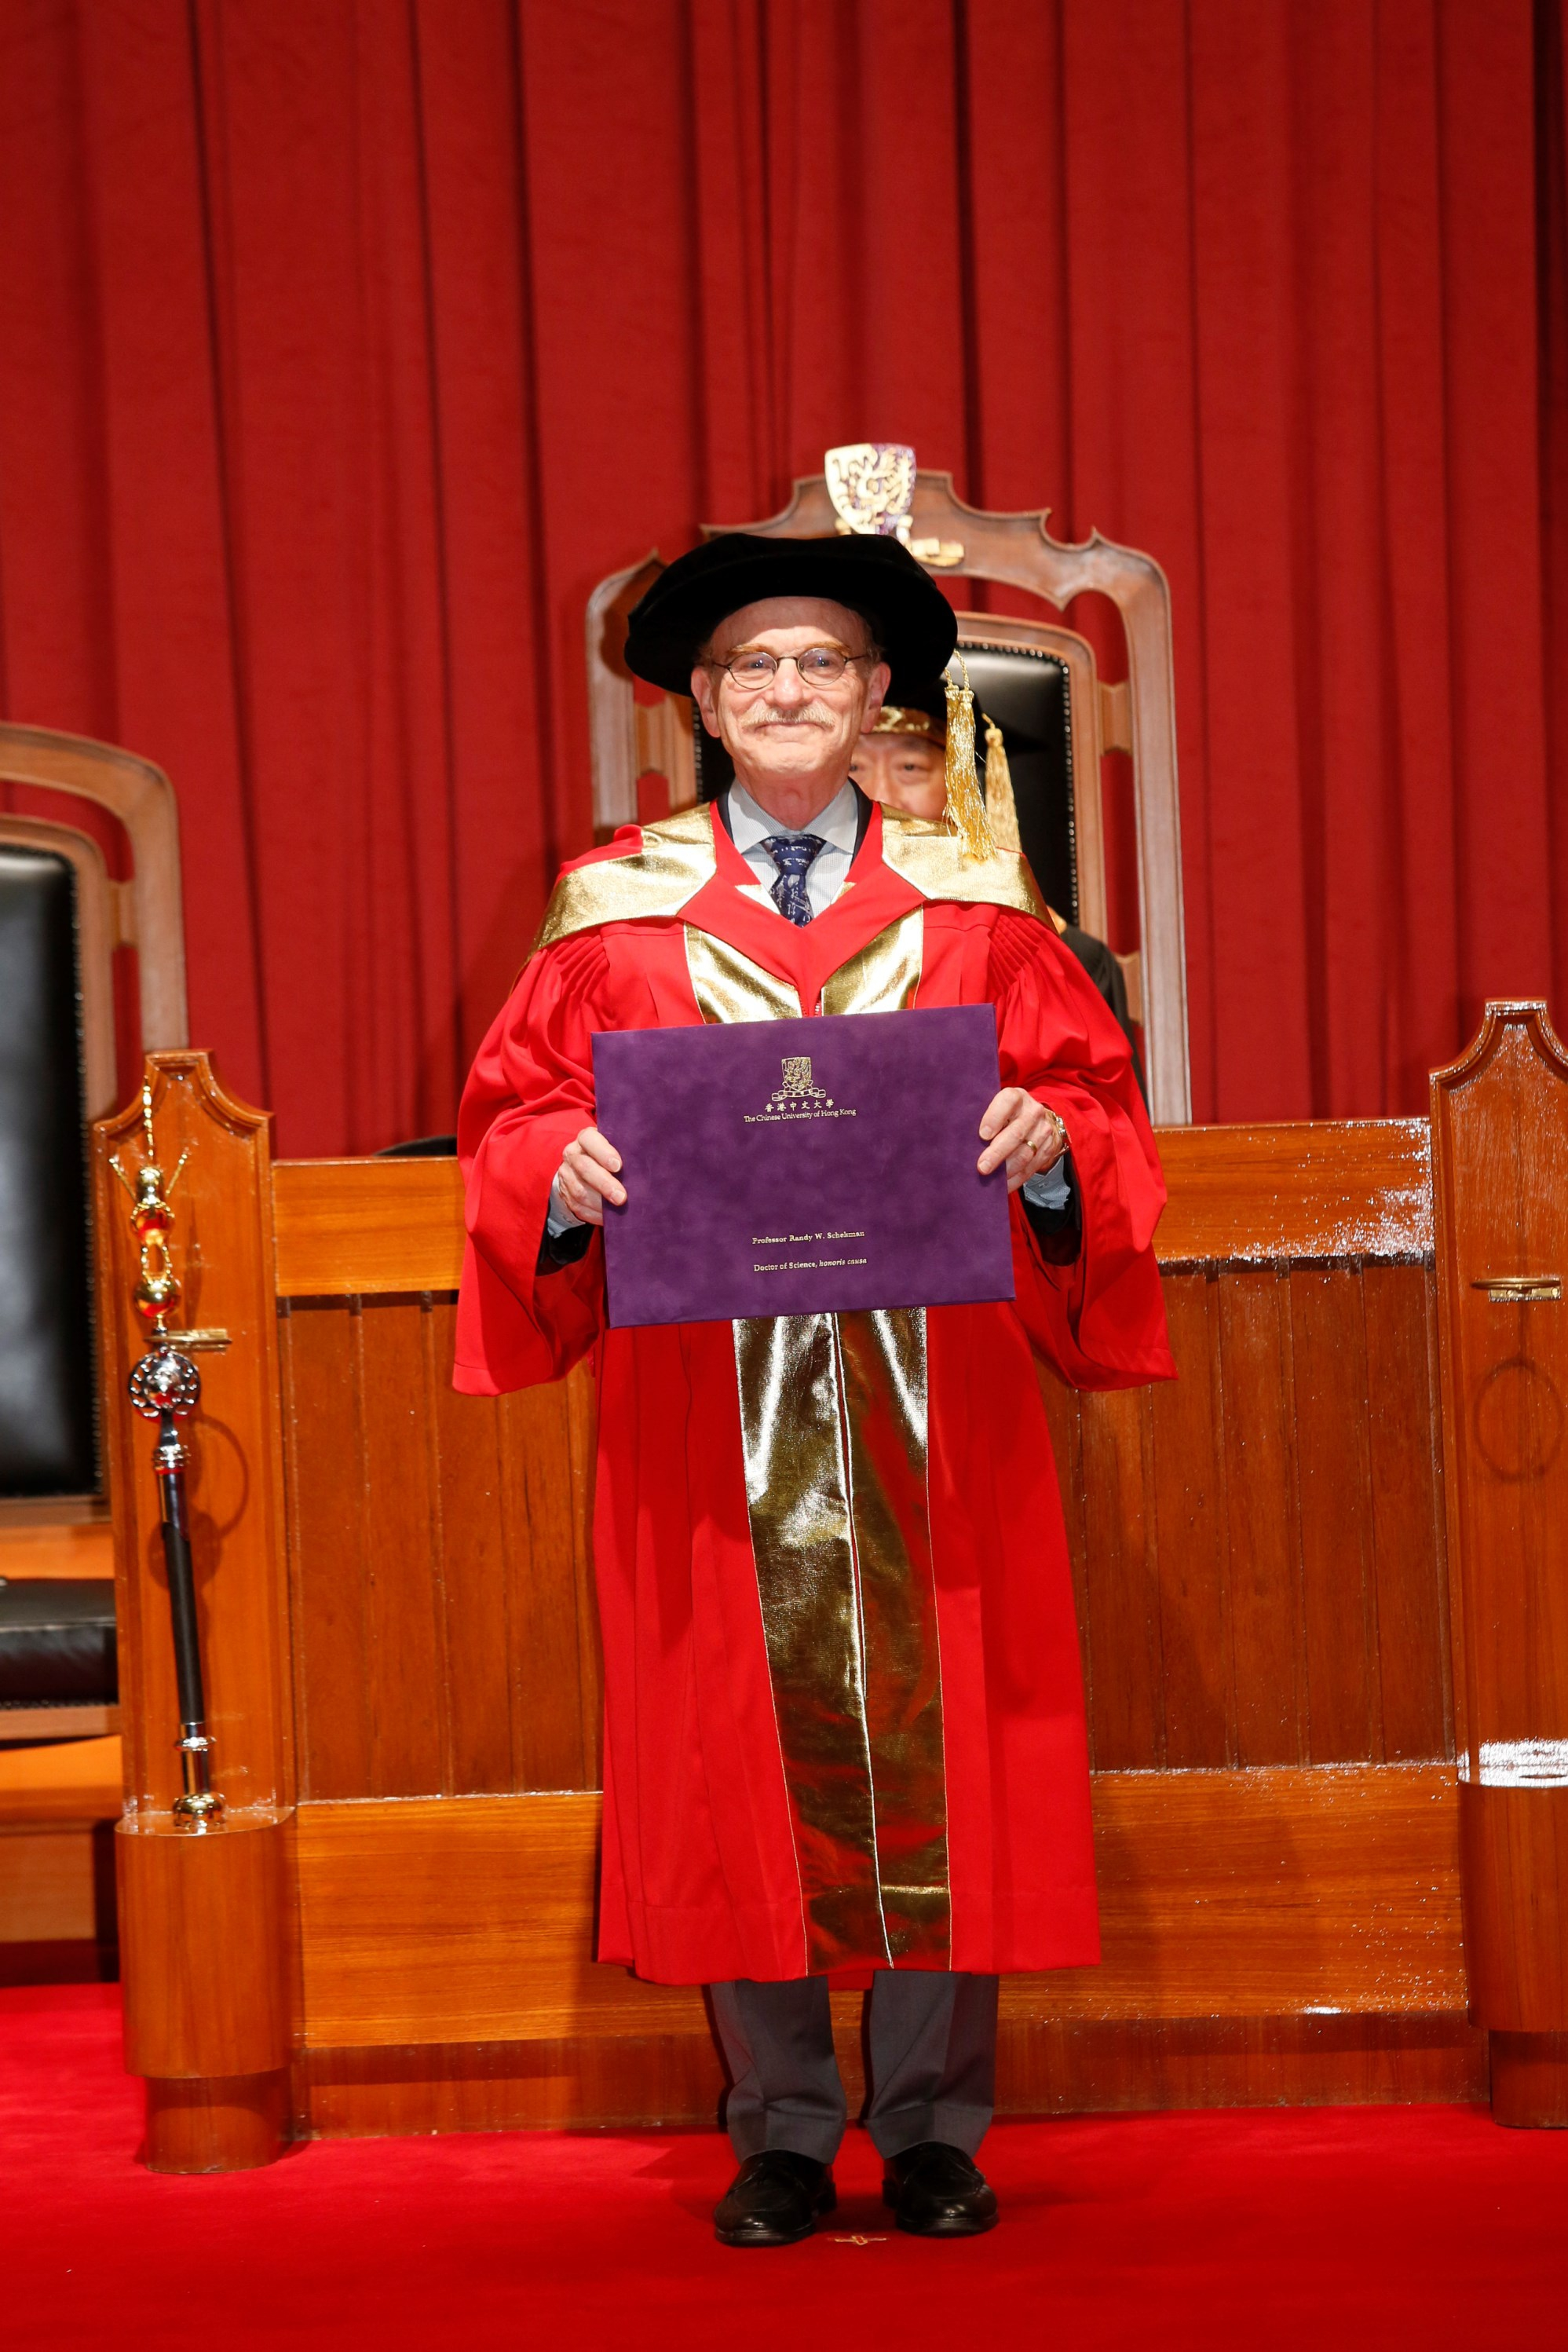 Prof. Randy W. Schekman receives the degree of Doctor of Science, honoris causa.